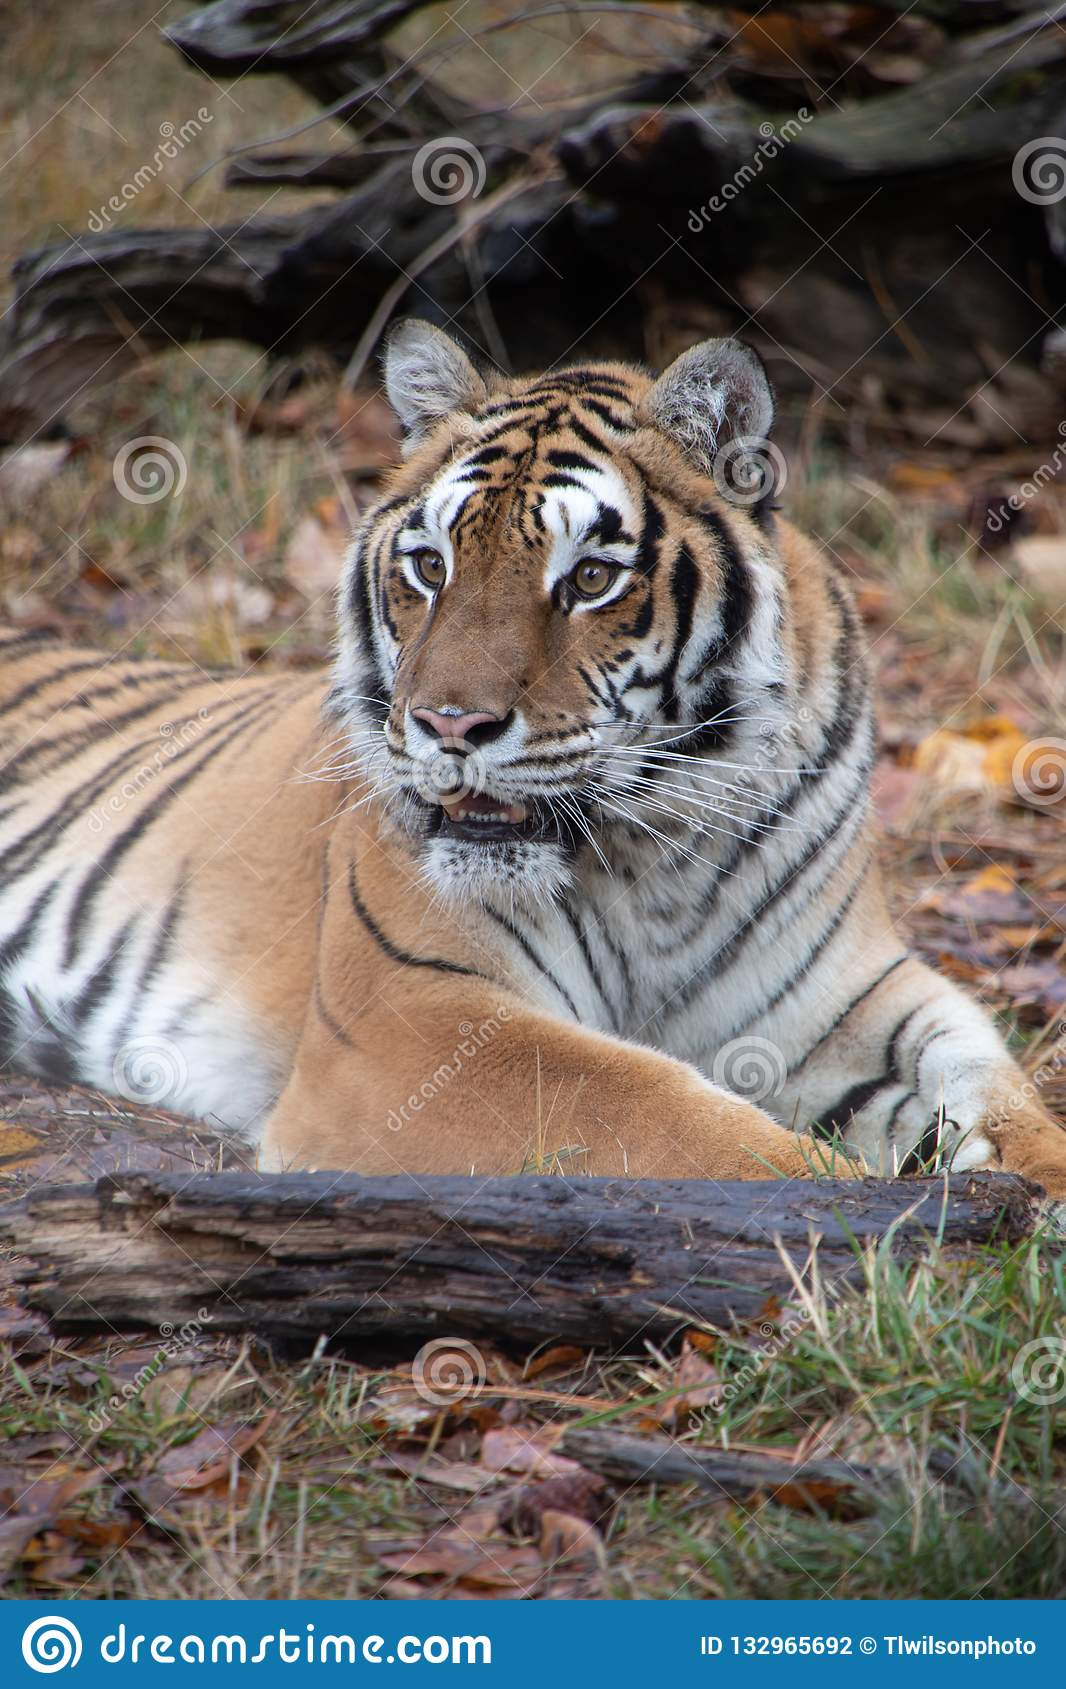 Tiger Lounging Photos Free Royalty Free Stock Photos From Dreamstime